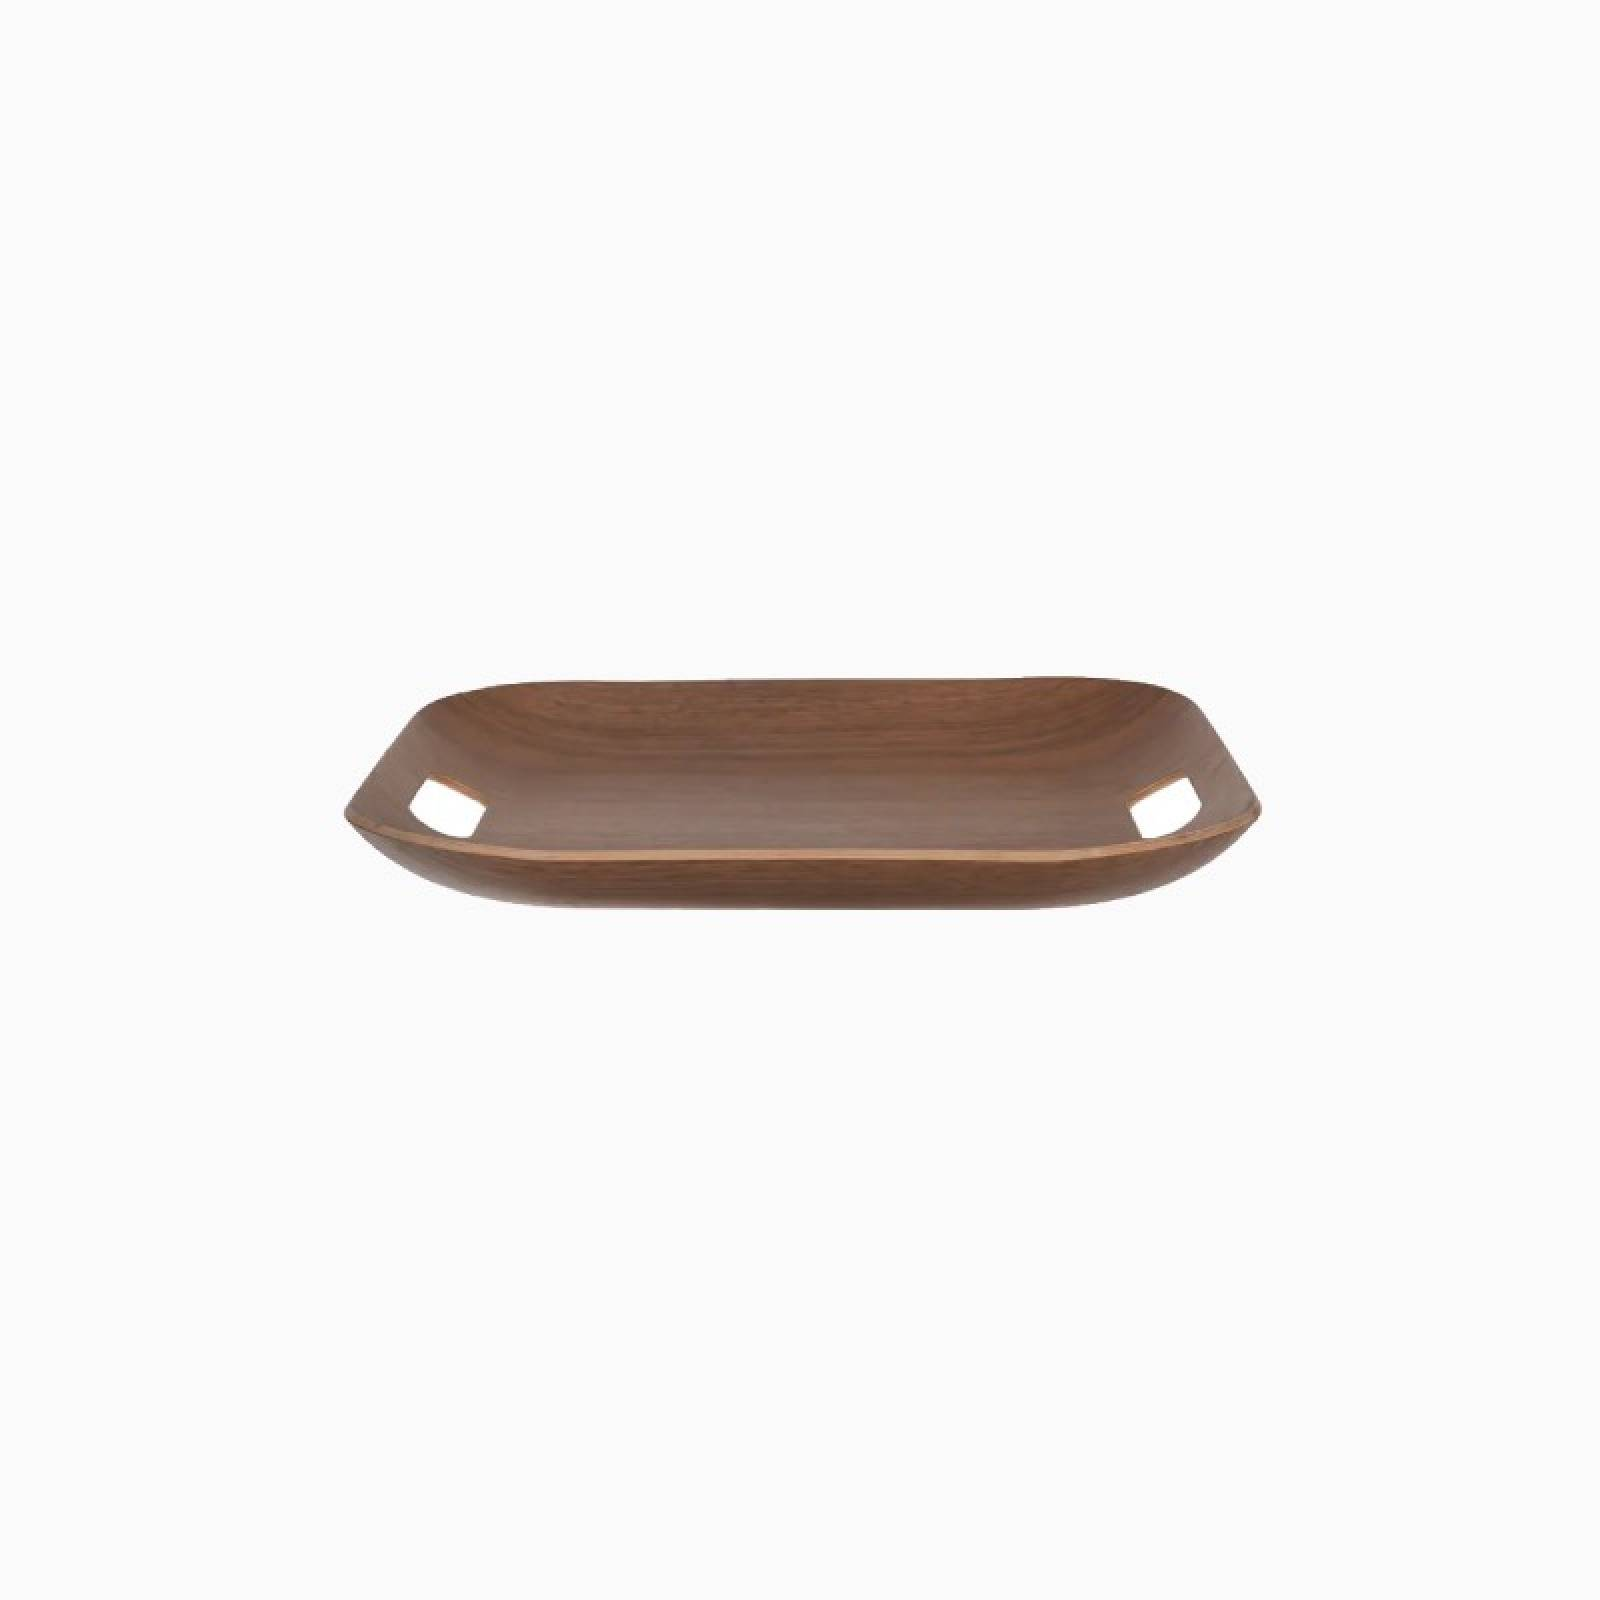 Square Wooden Tray With Handles In Walnut thumbnails